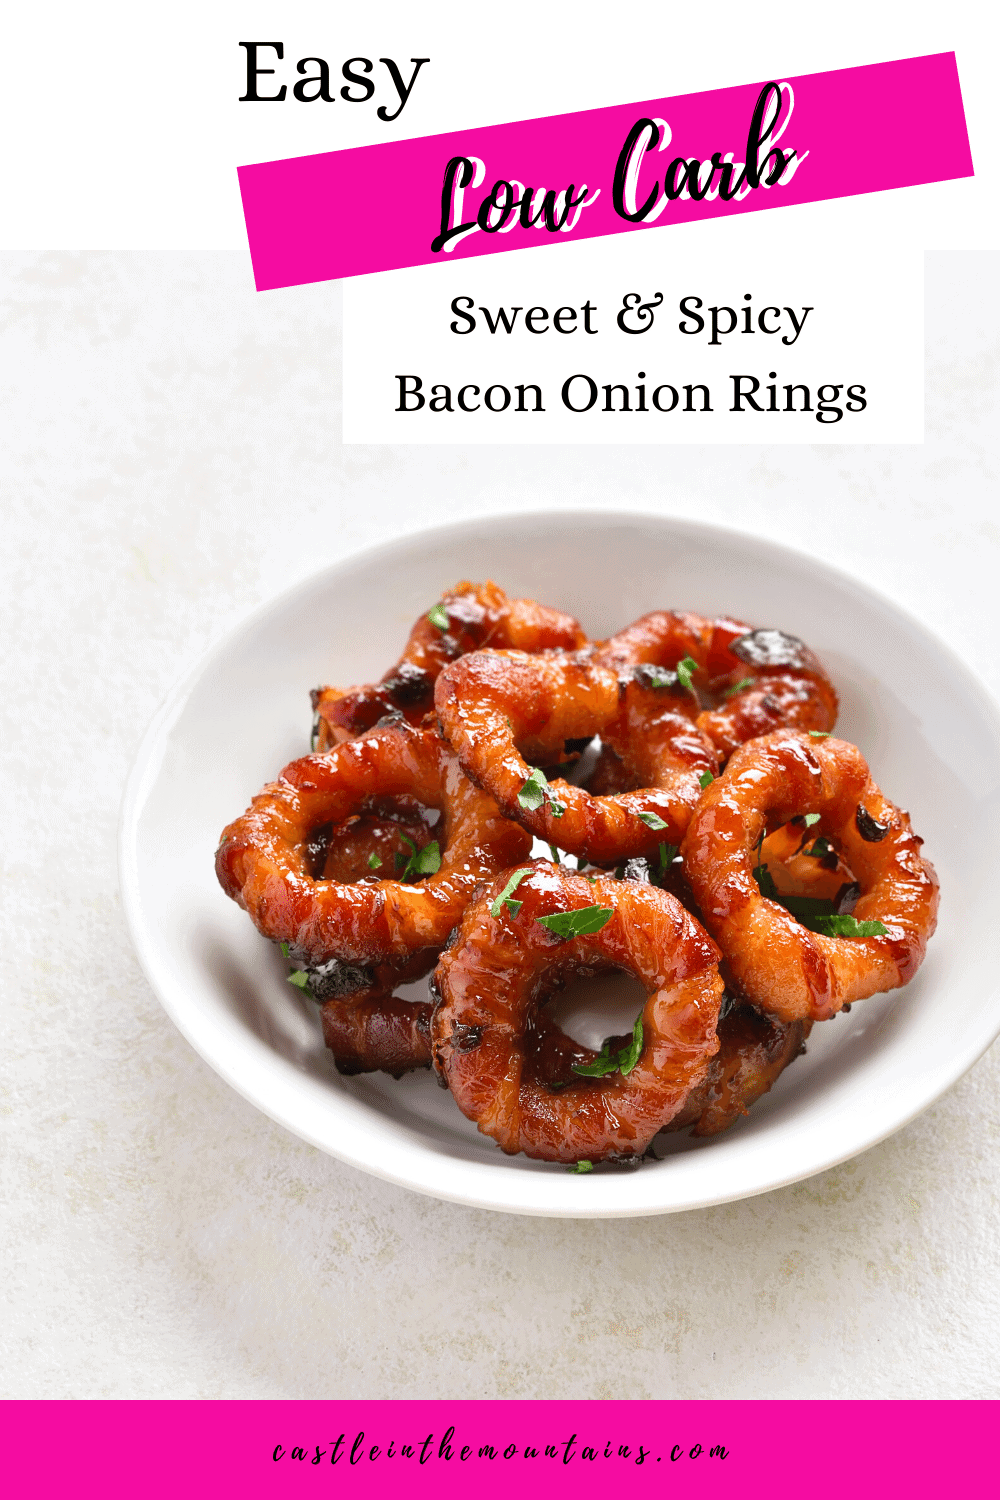 Bacon Onion Rings - How to make this genius snack!